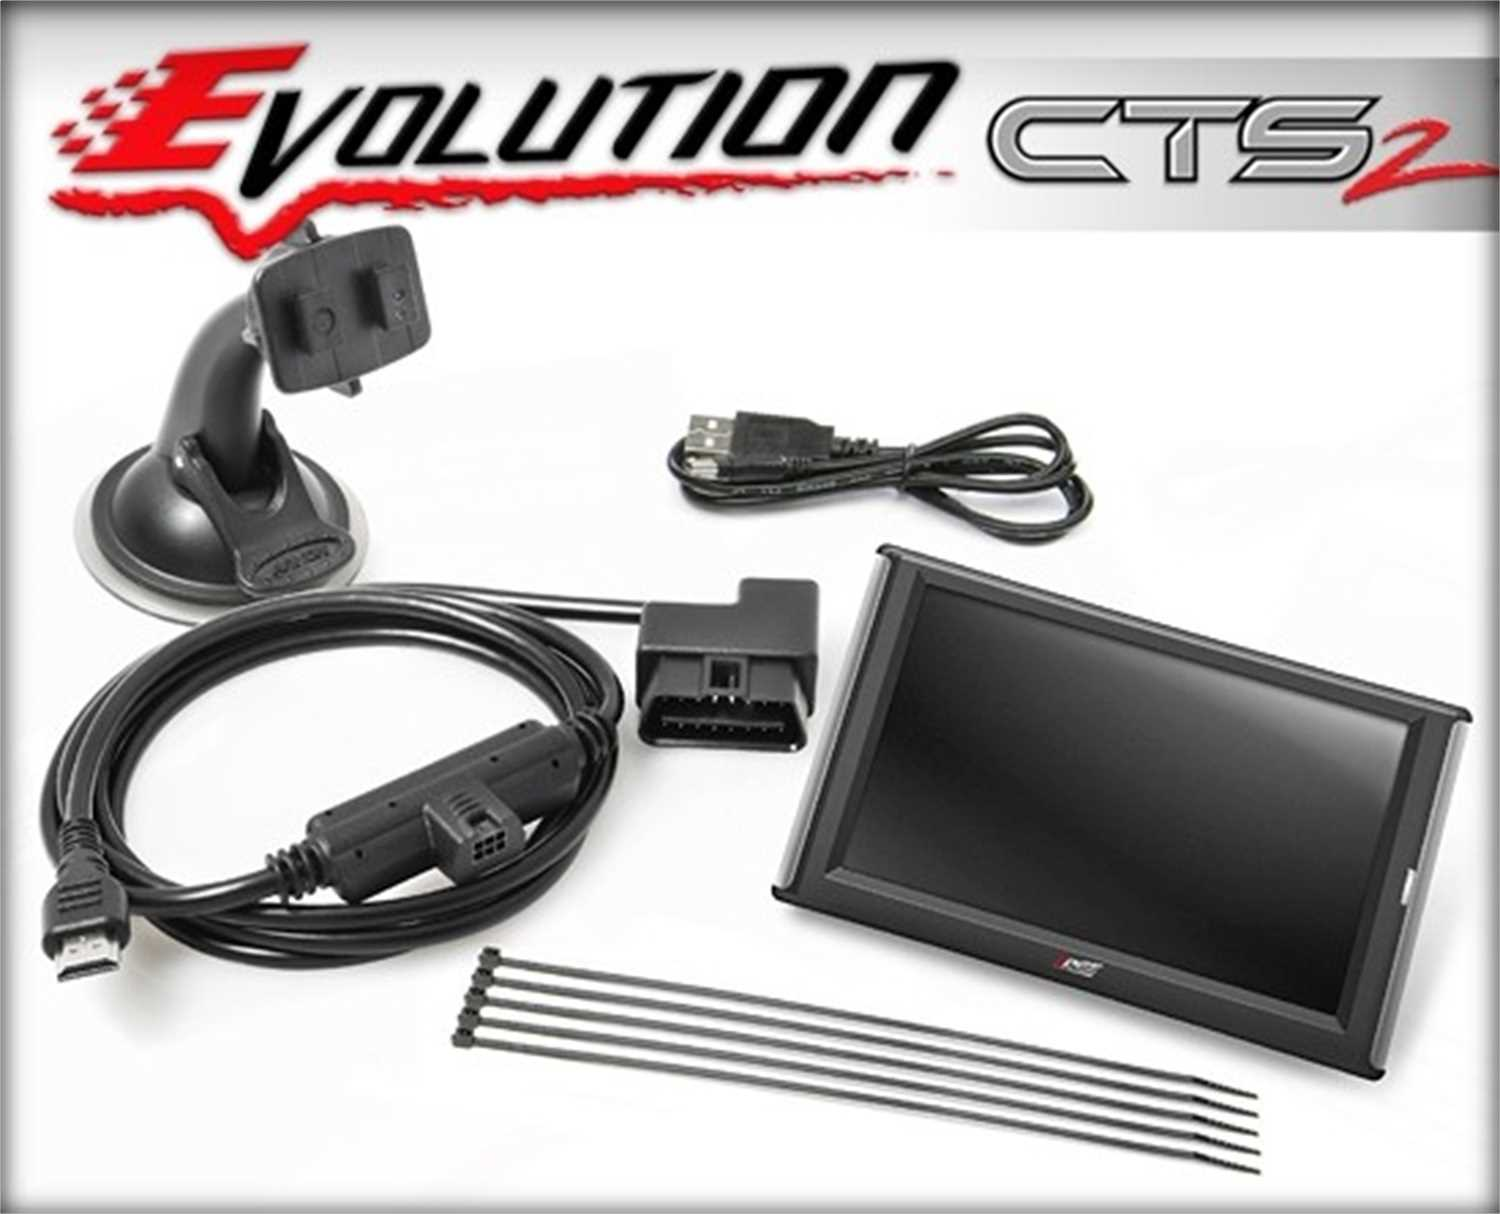 Edge Products CTS2 Gas Evolution Programmer 25450